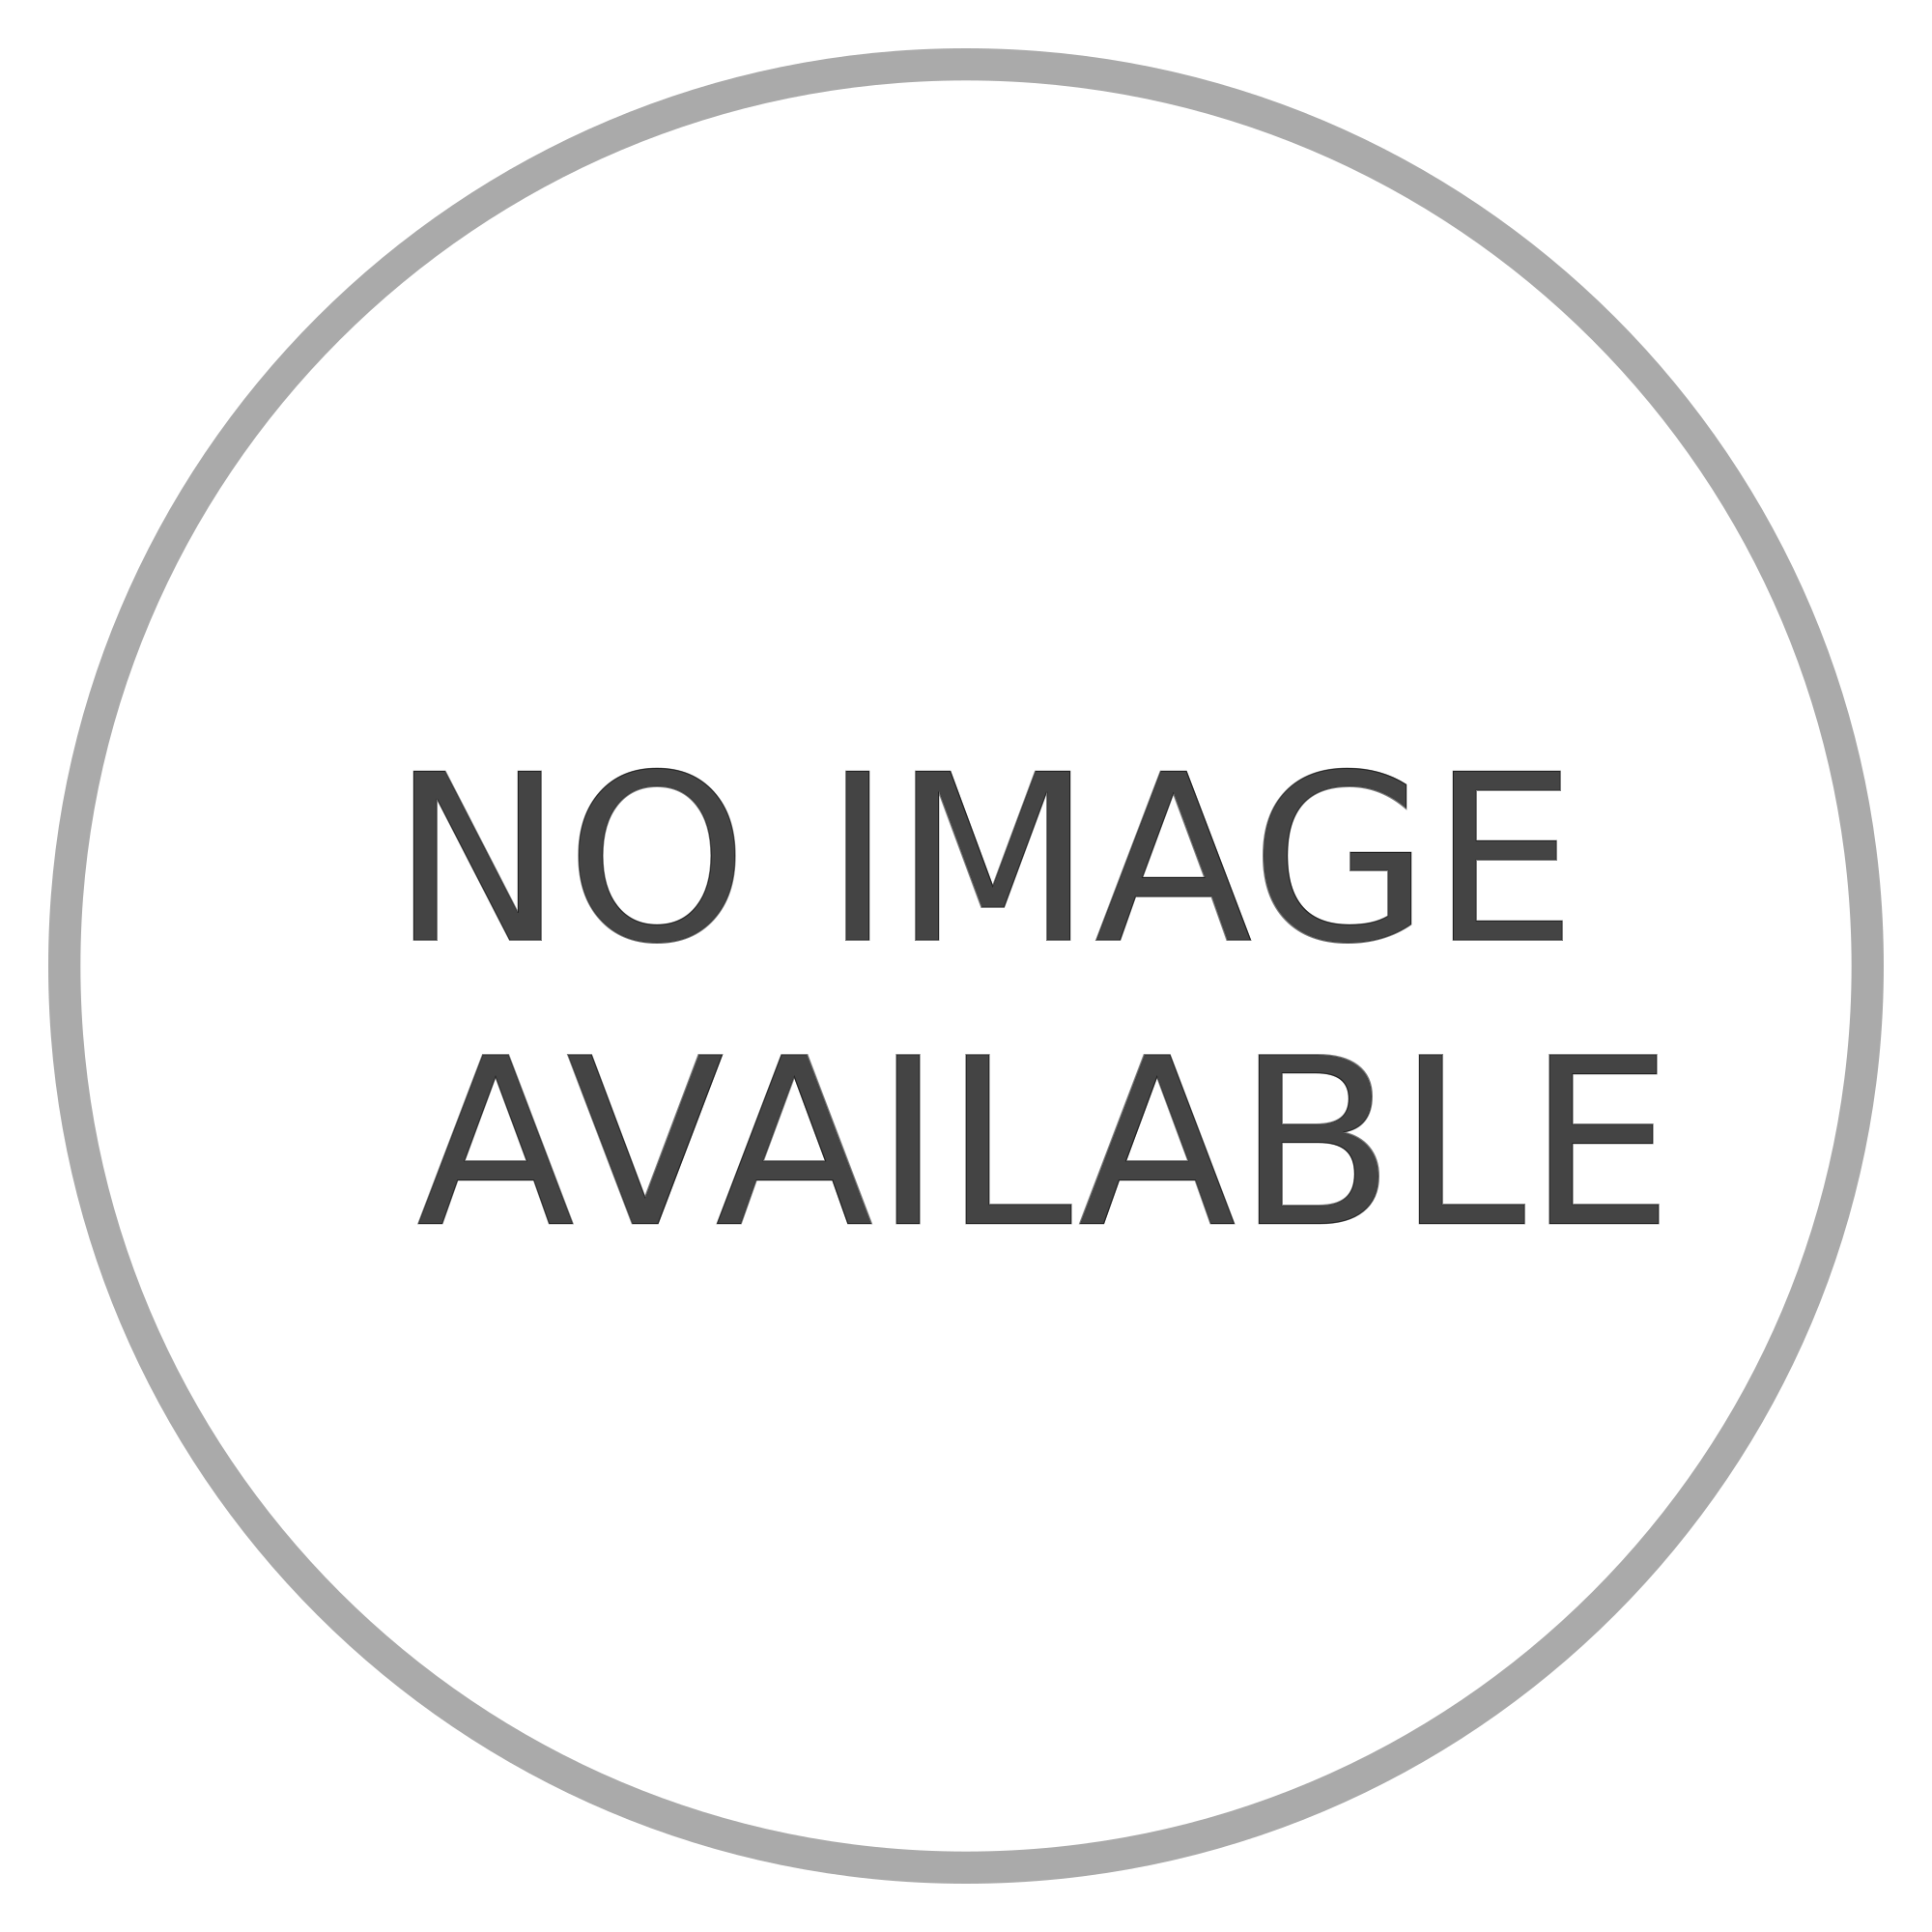 No image available png. File svg wikimedia commons